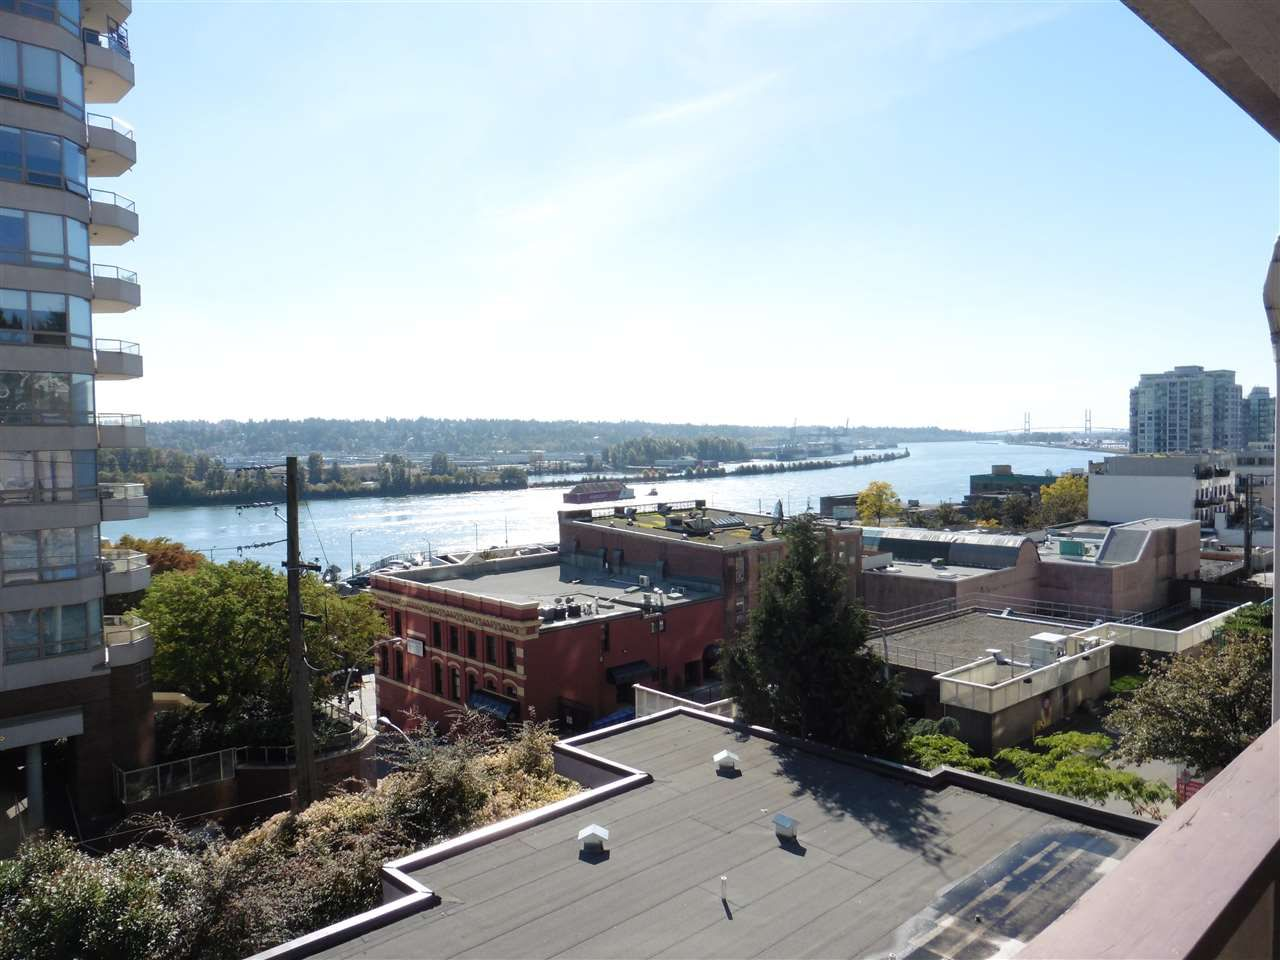 """Main Photo: 307 45 FOURTH Street in New Westminster: Downtown NW Condo for sale in """"DORCHESTER HOUSE"""" : MLS®# R2313336"""